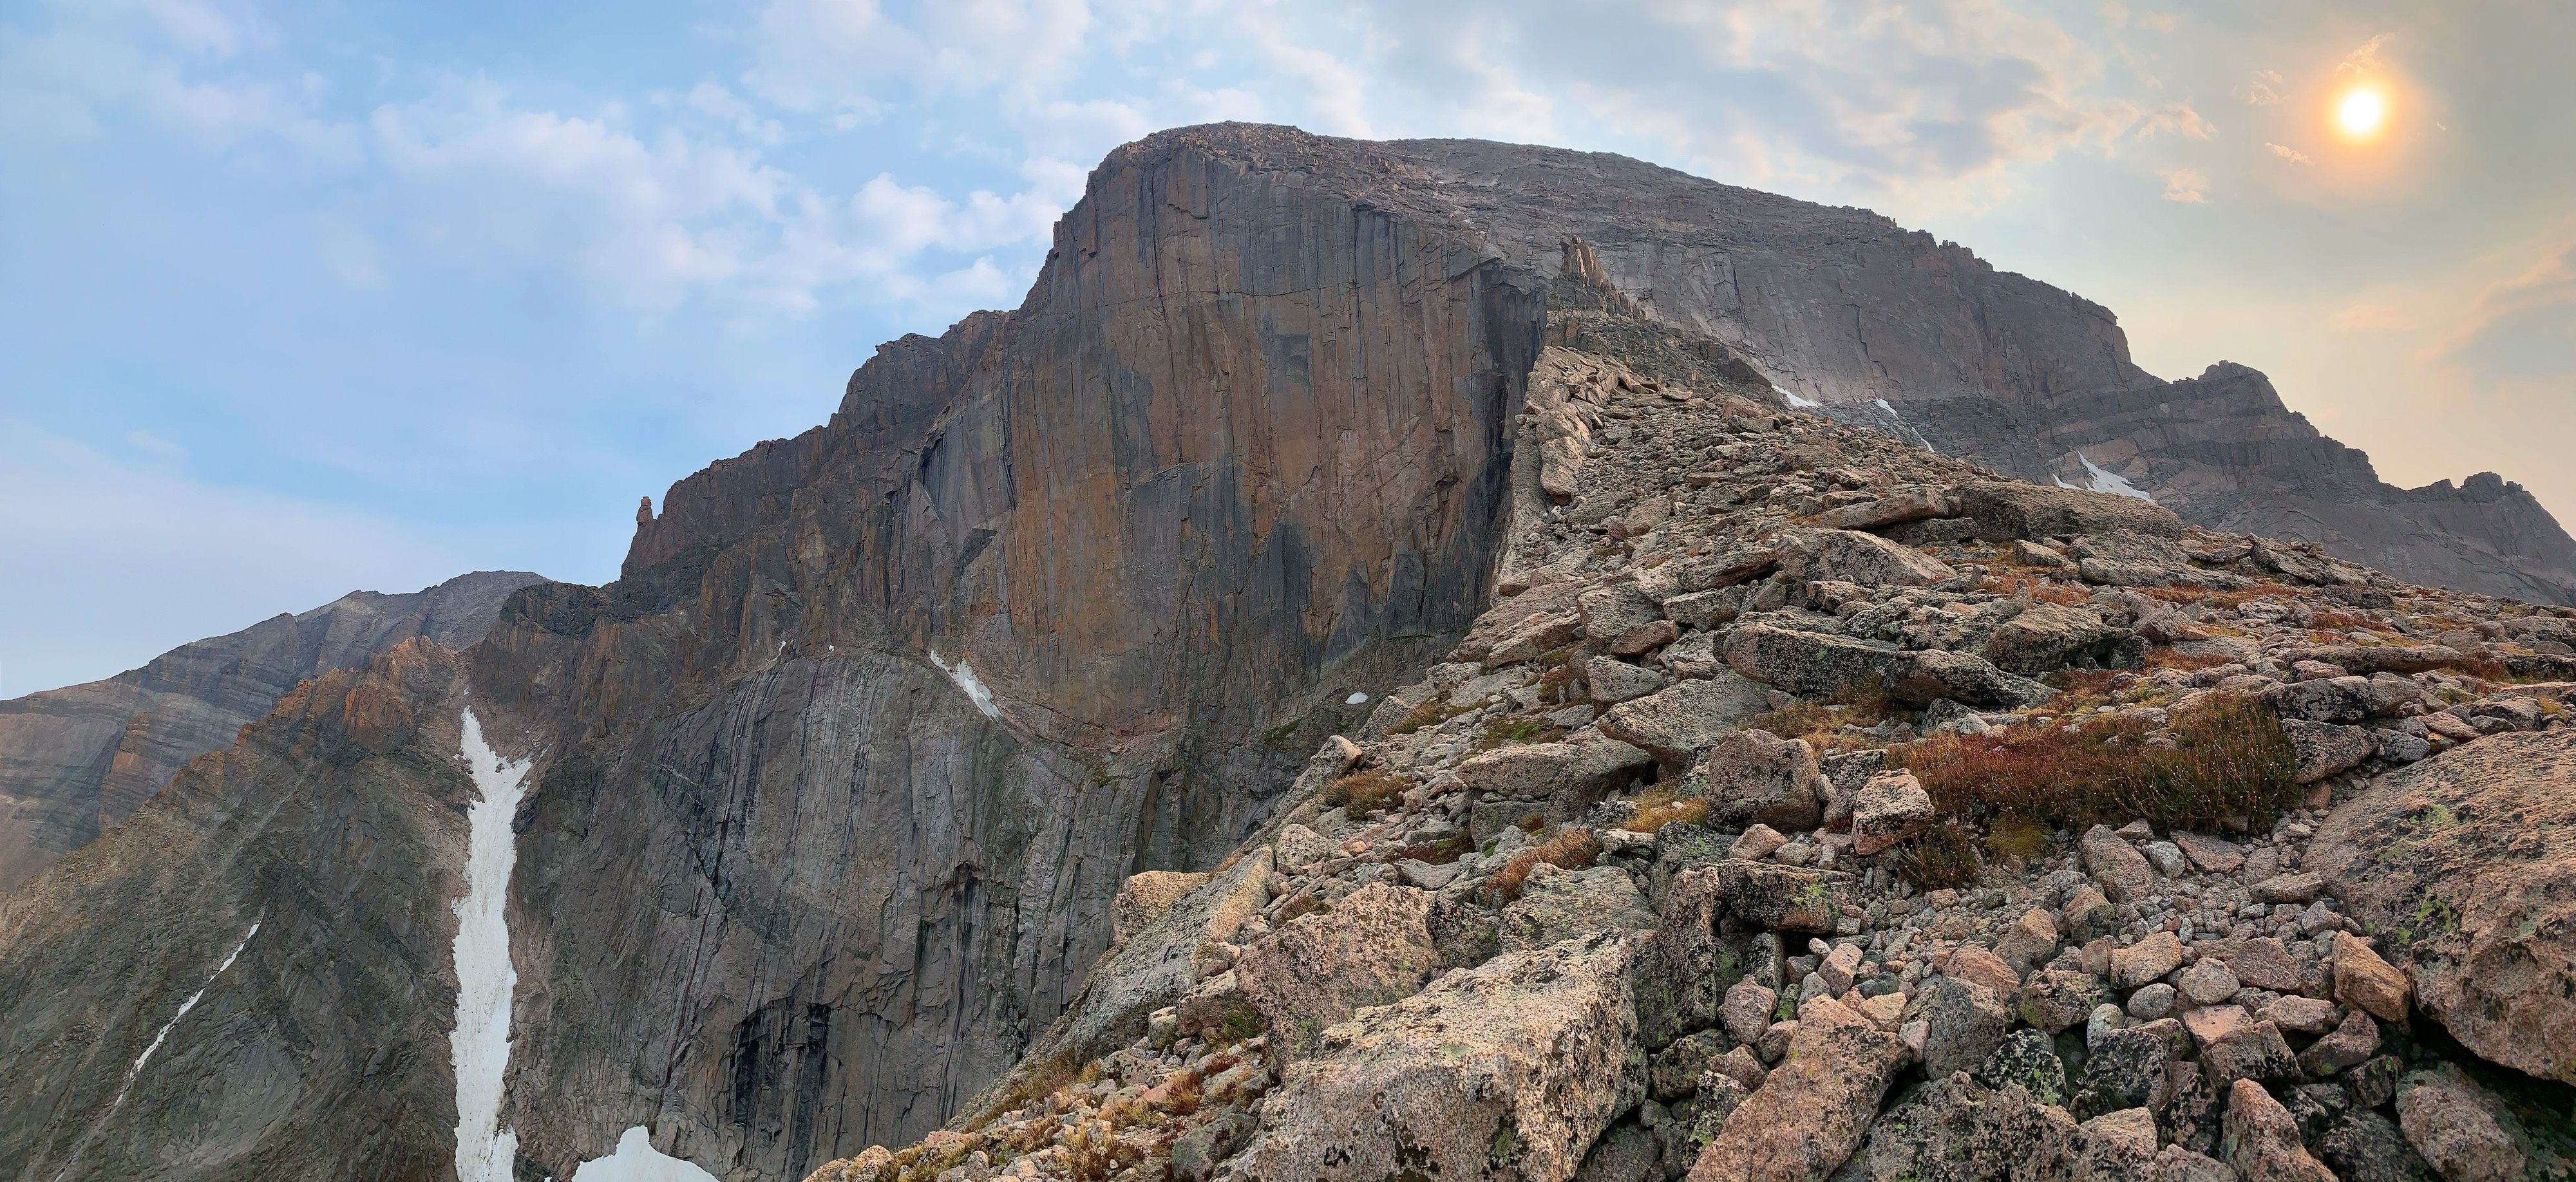 A view of The Diamond, the face of Longs Peak, the furthest north 14,000+ foot peak in Colorado. We backpacked this peak and climbed this ridge the night before our summit via the Class 3 approach, also known as the Keyhole Route.